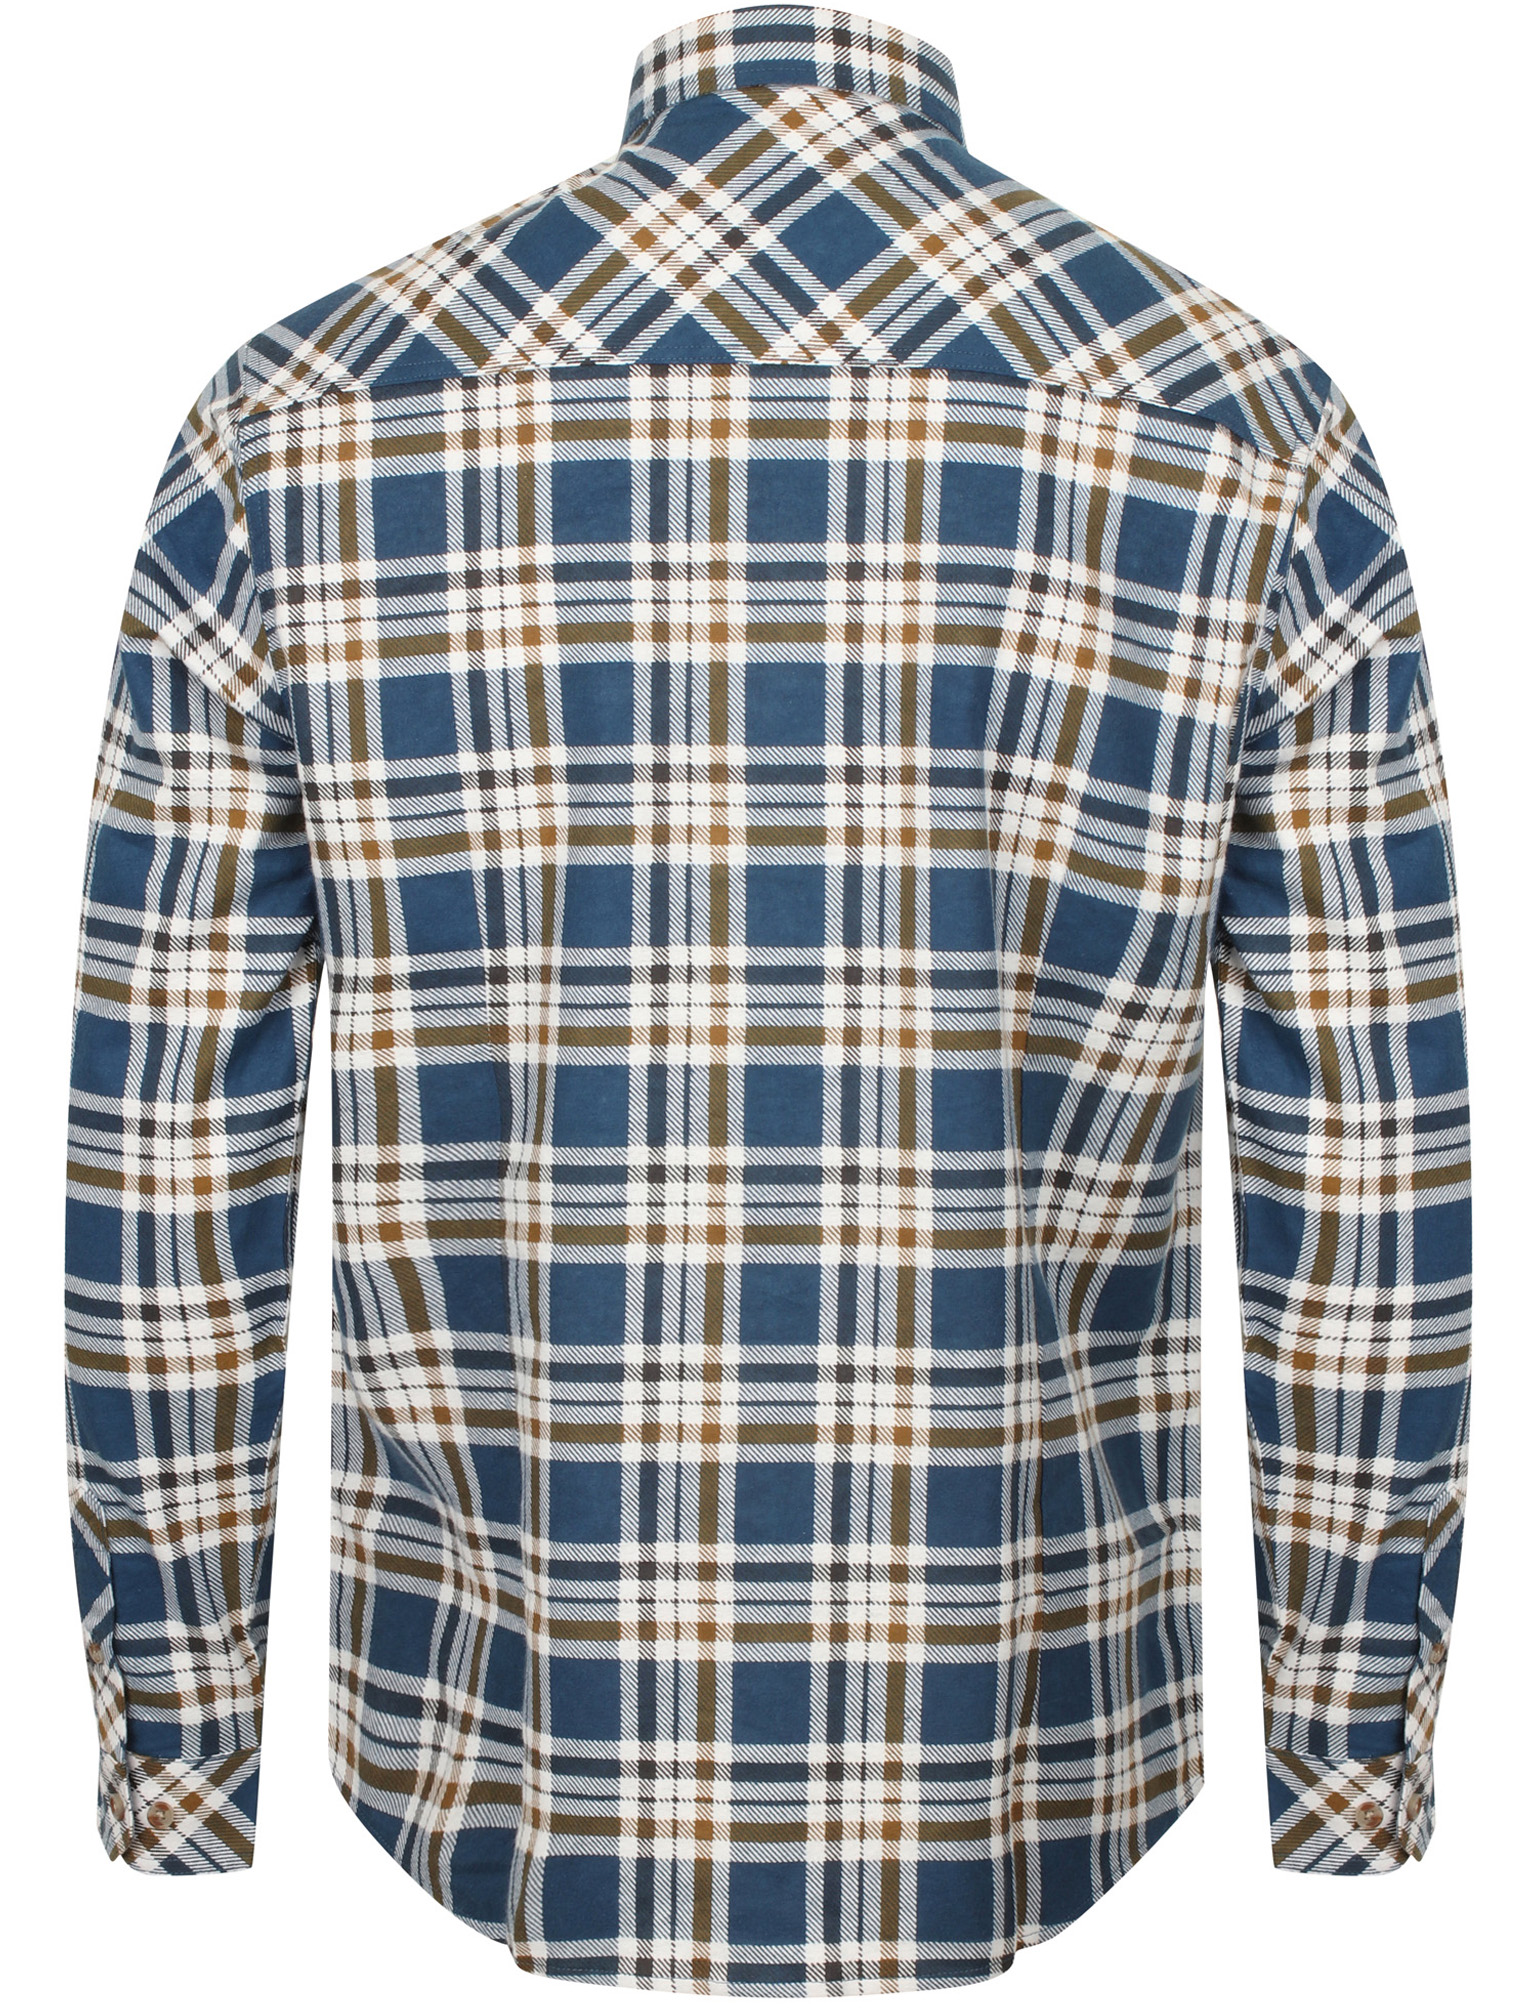 New-Mens-Tokyo-Laundry-Cotton-Long-Sleeve-Checked-Flannel-Shirt-Size-S-XL thumbnail 34